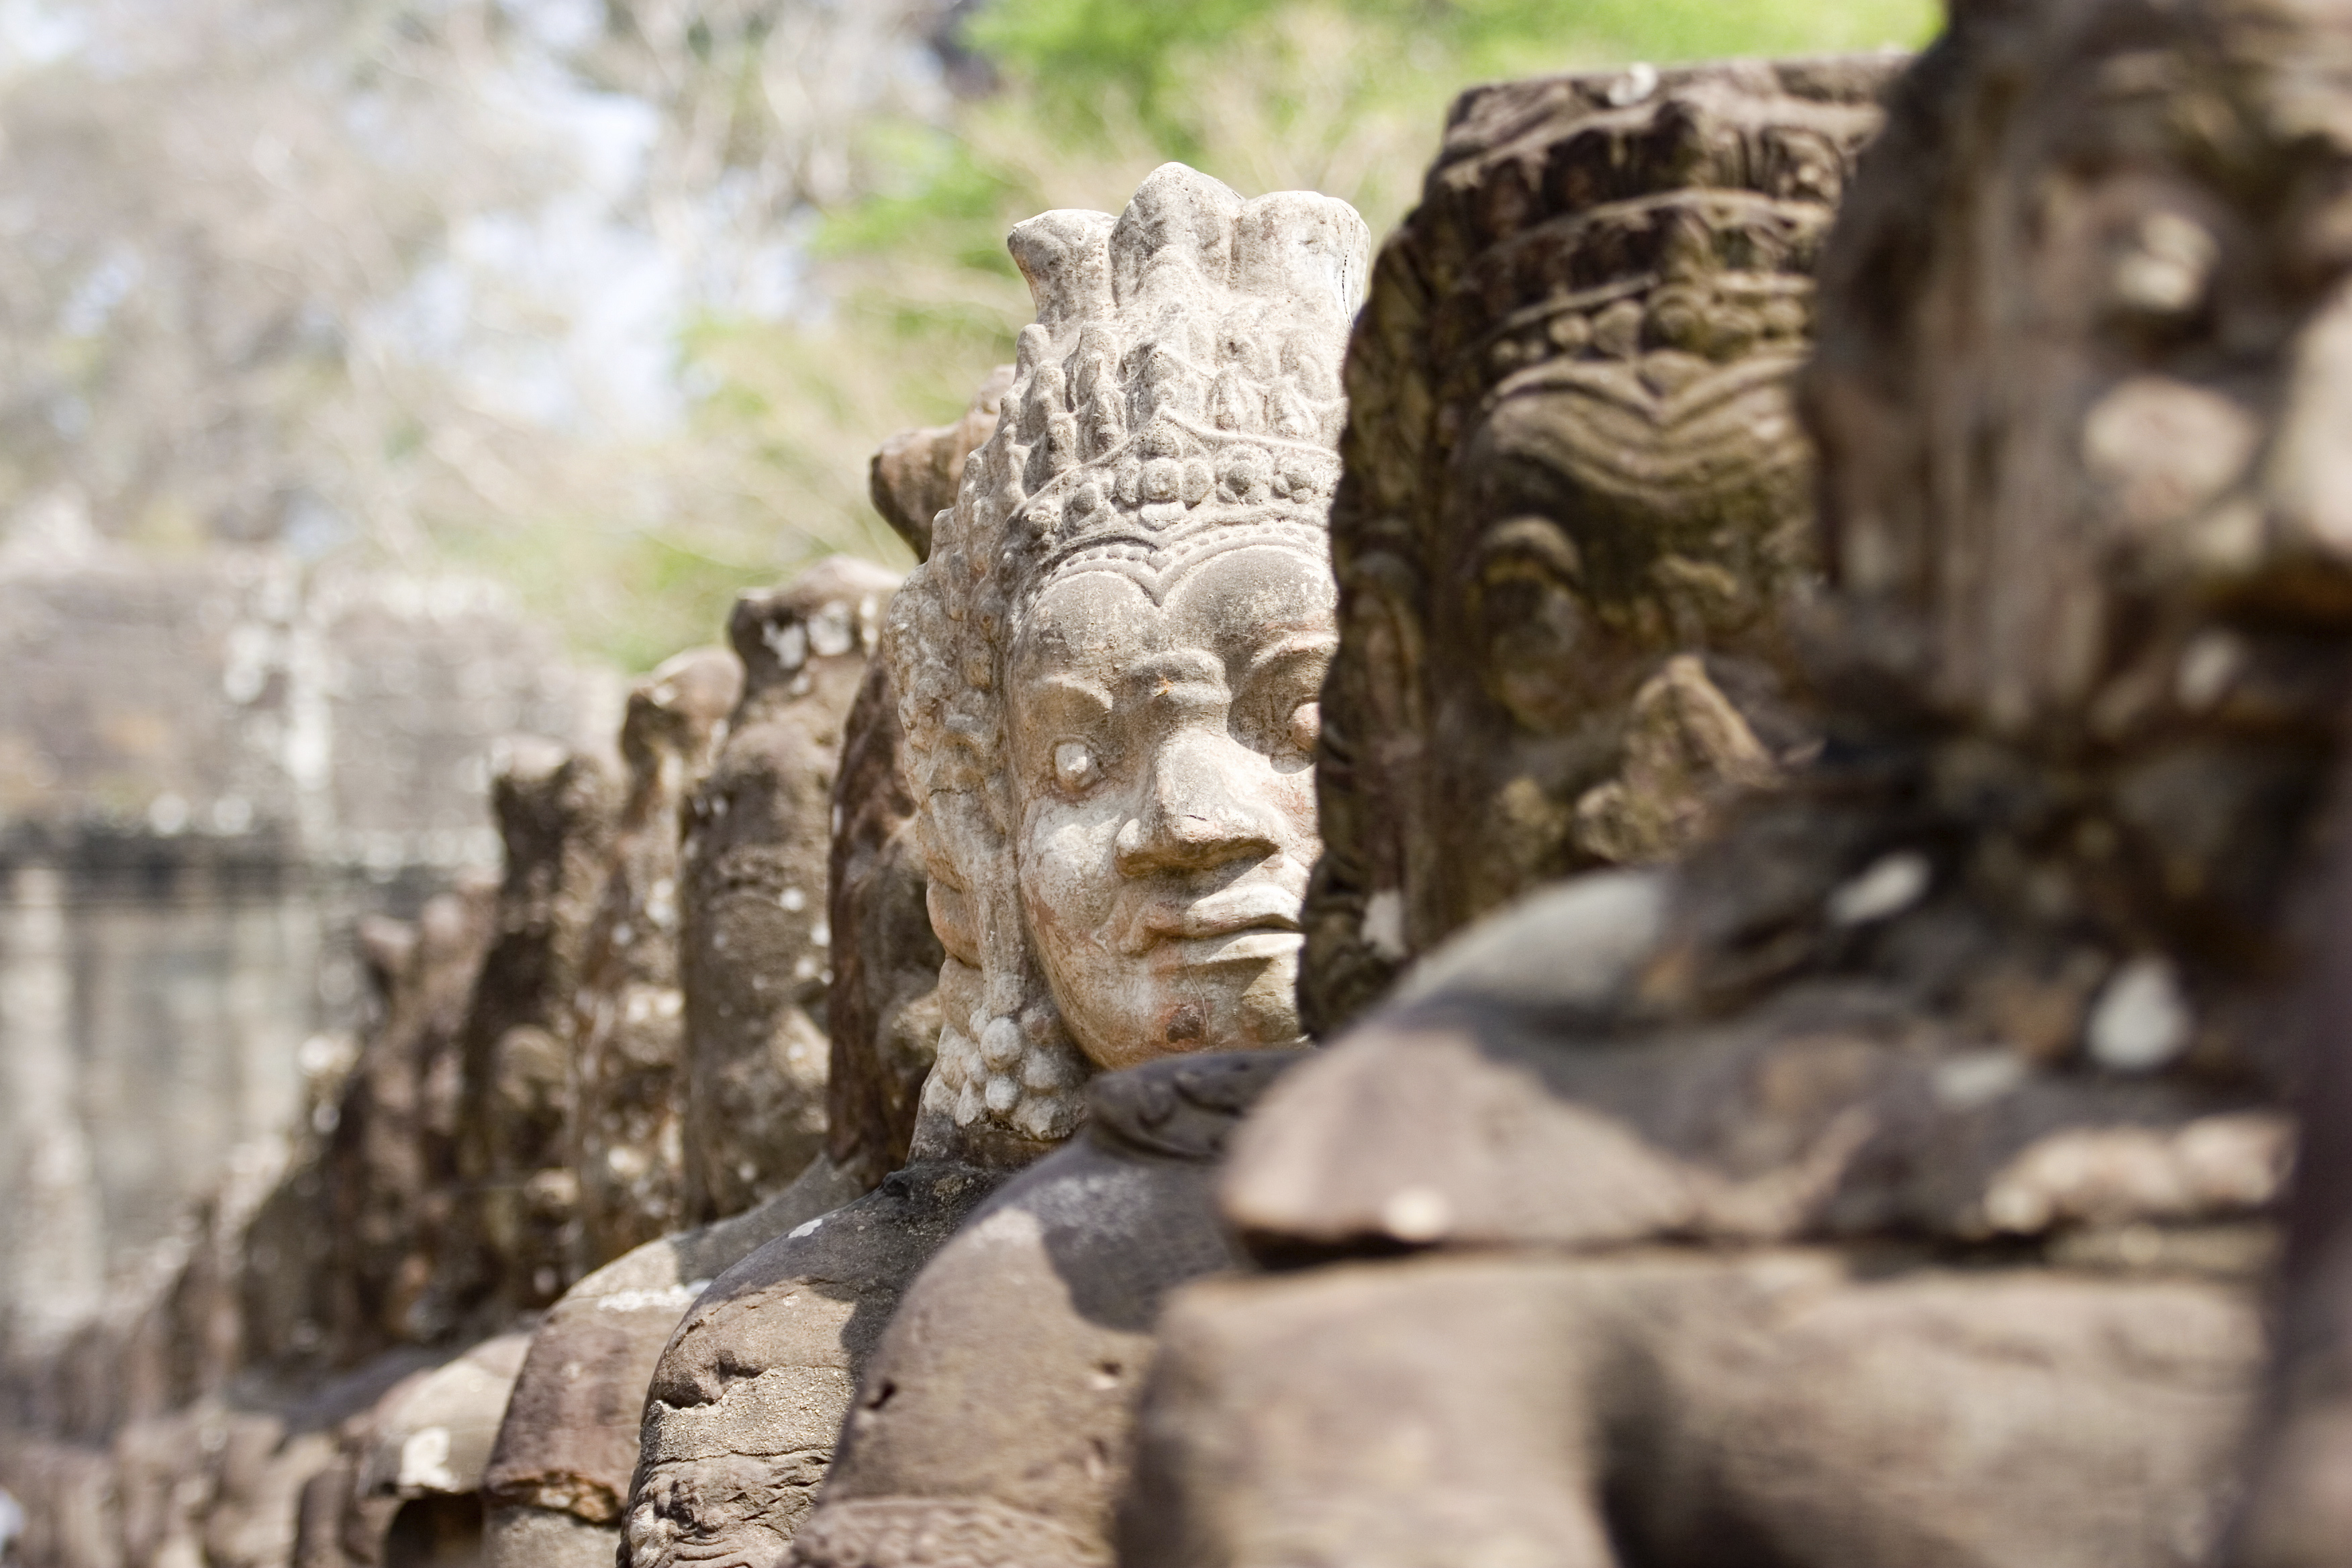 Statues in Angkor Wat temple complex in Cambodia